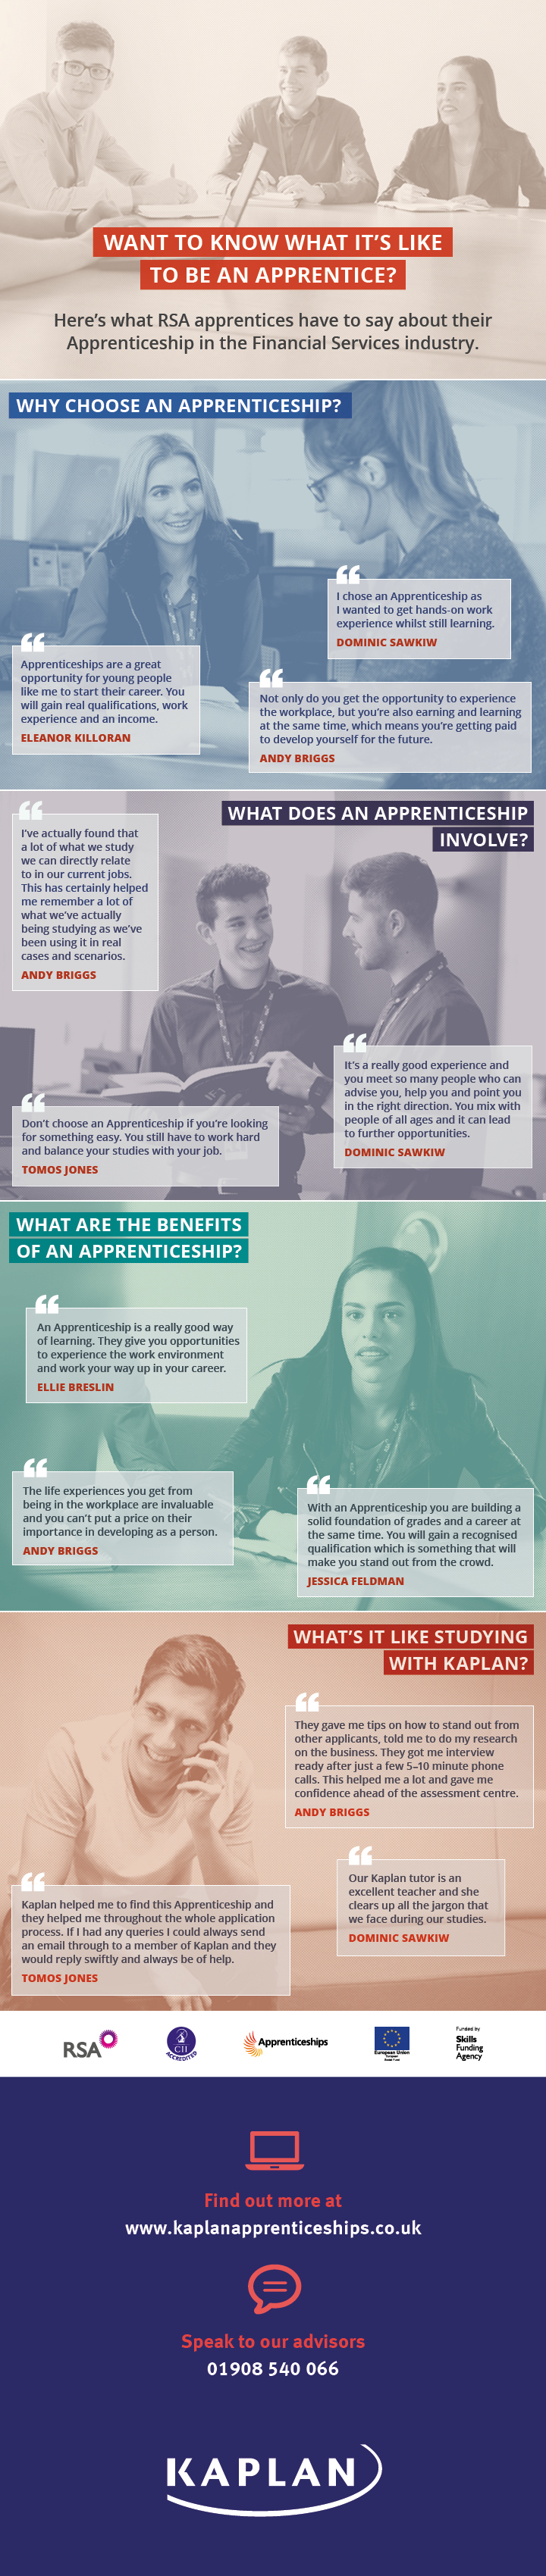 Want to know what it's like to be an apprentice?